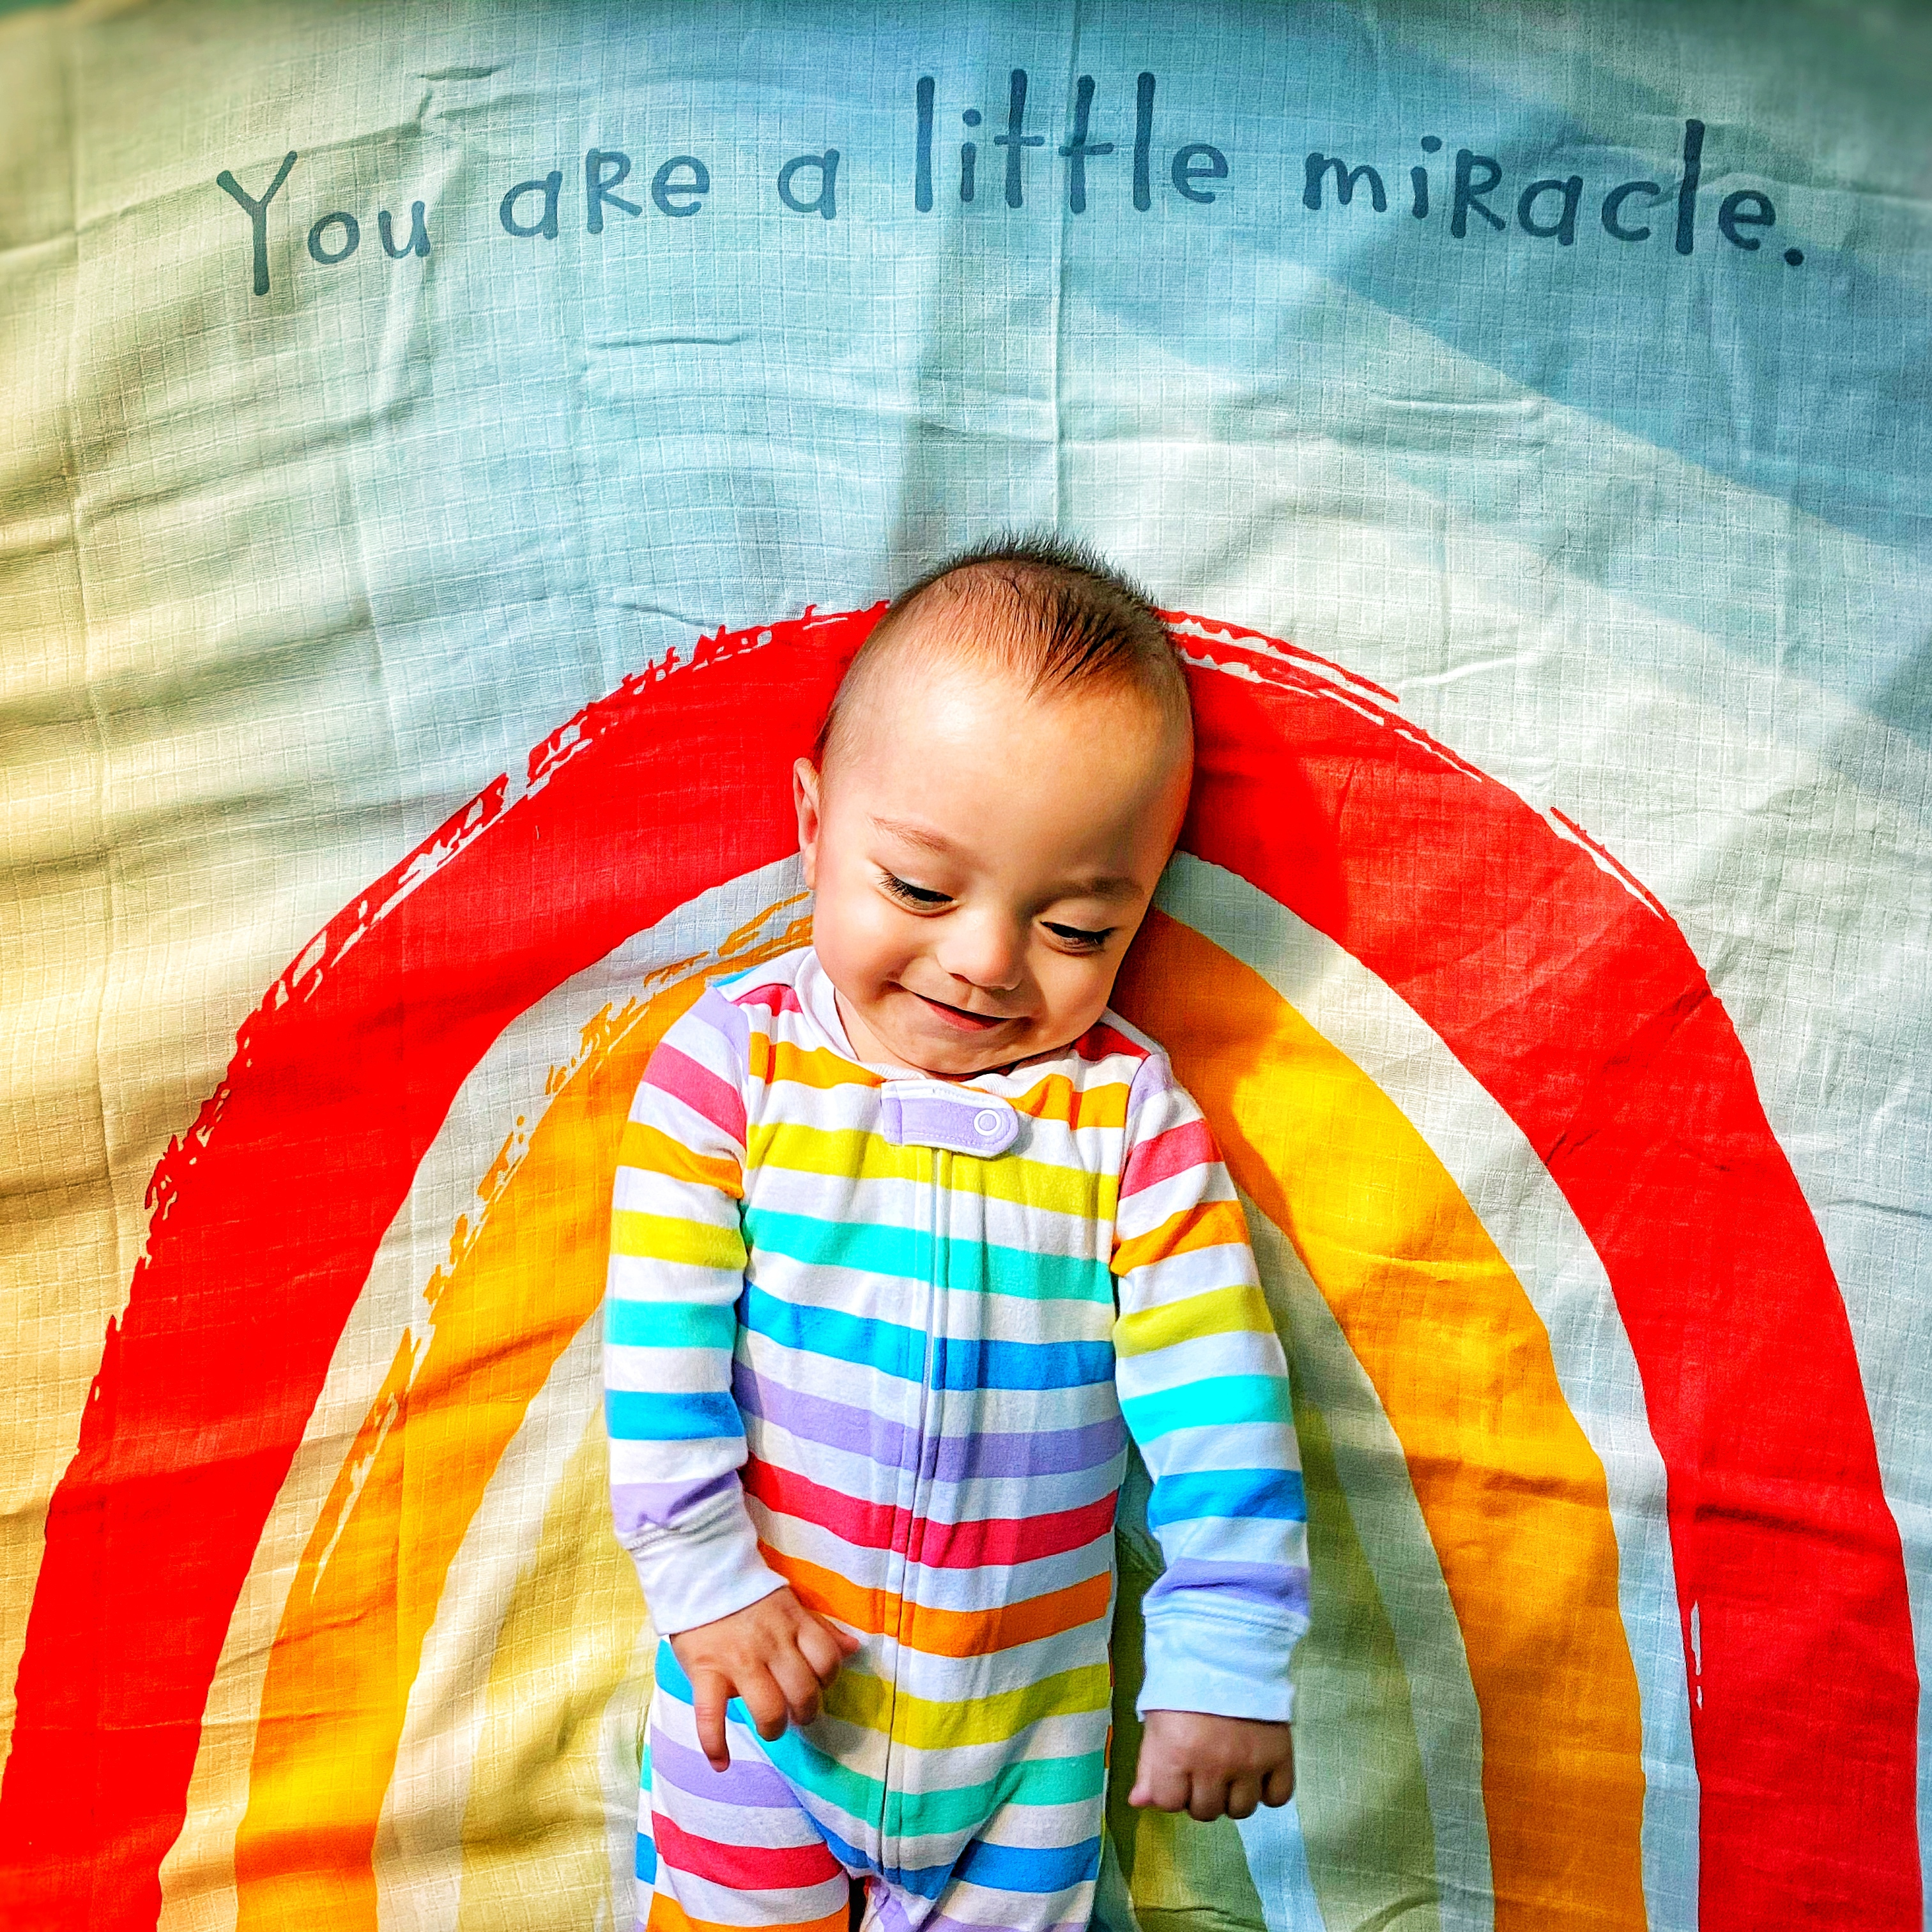 You are a little miracle